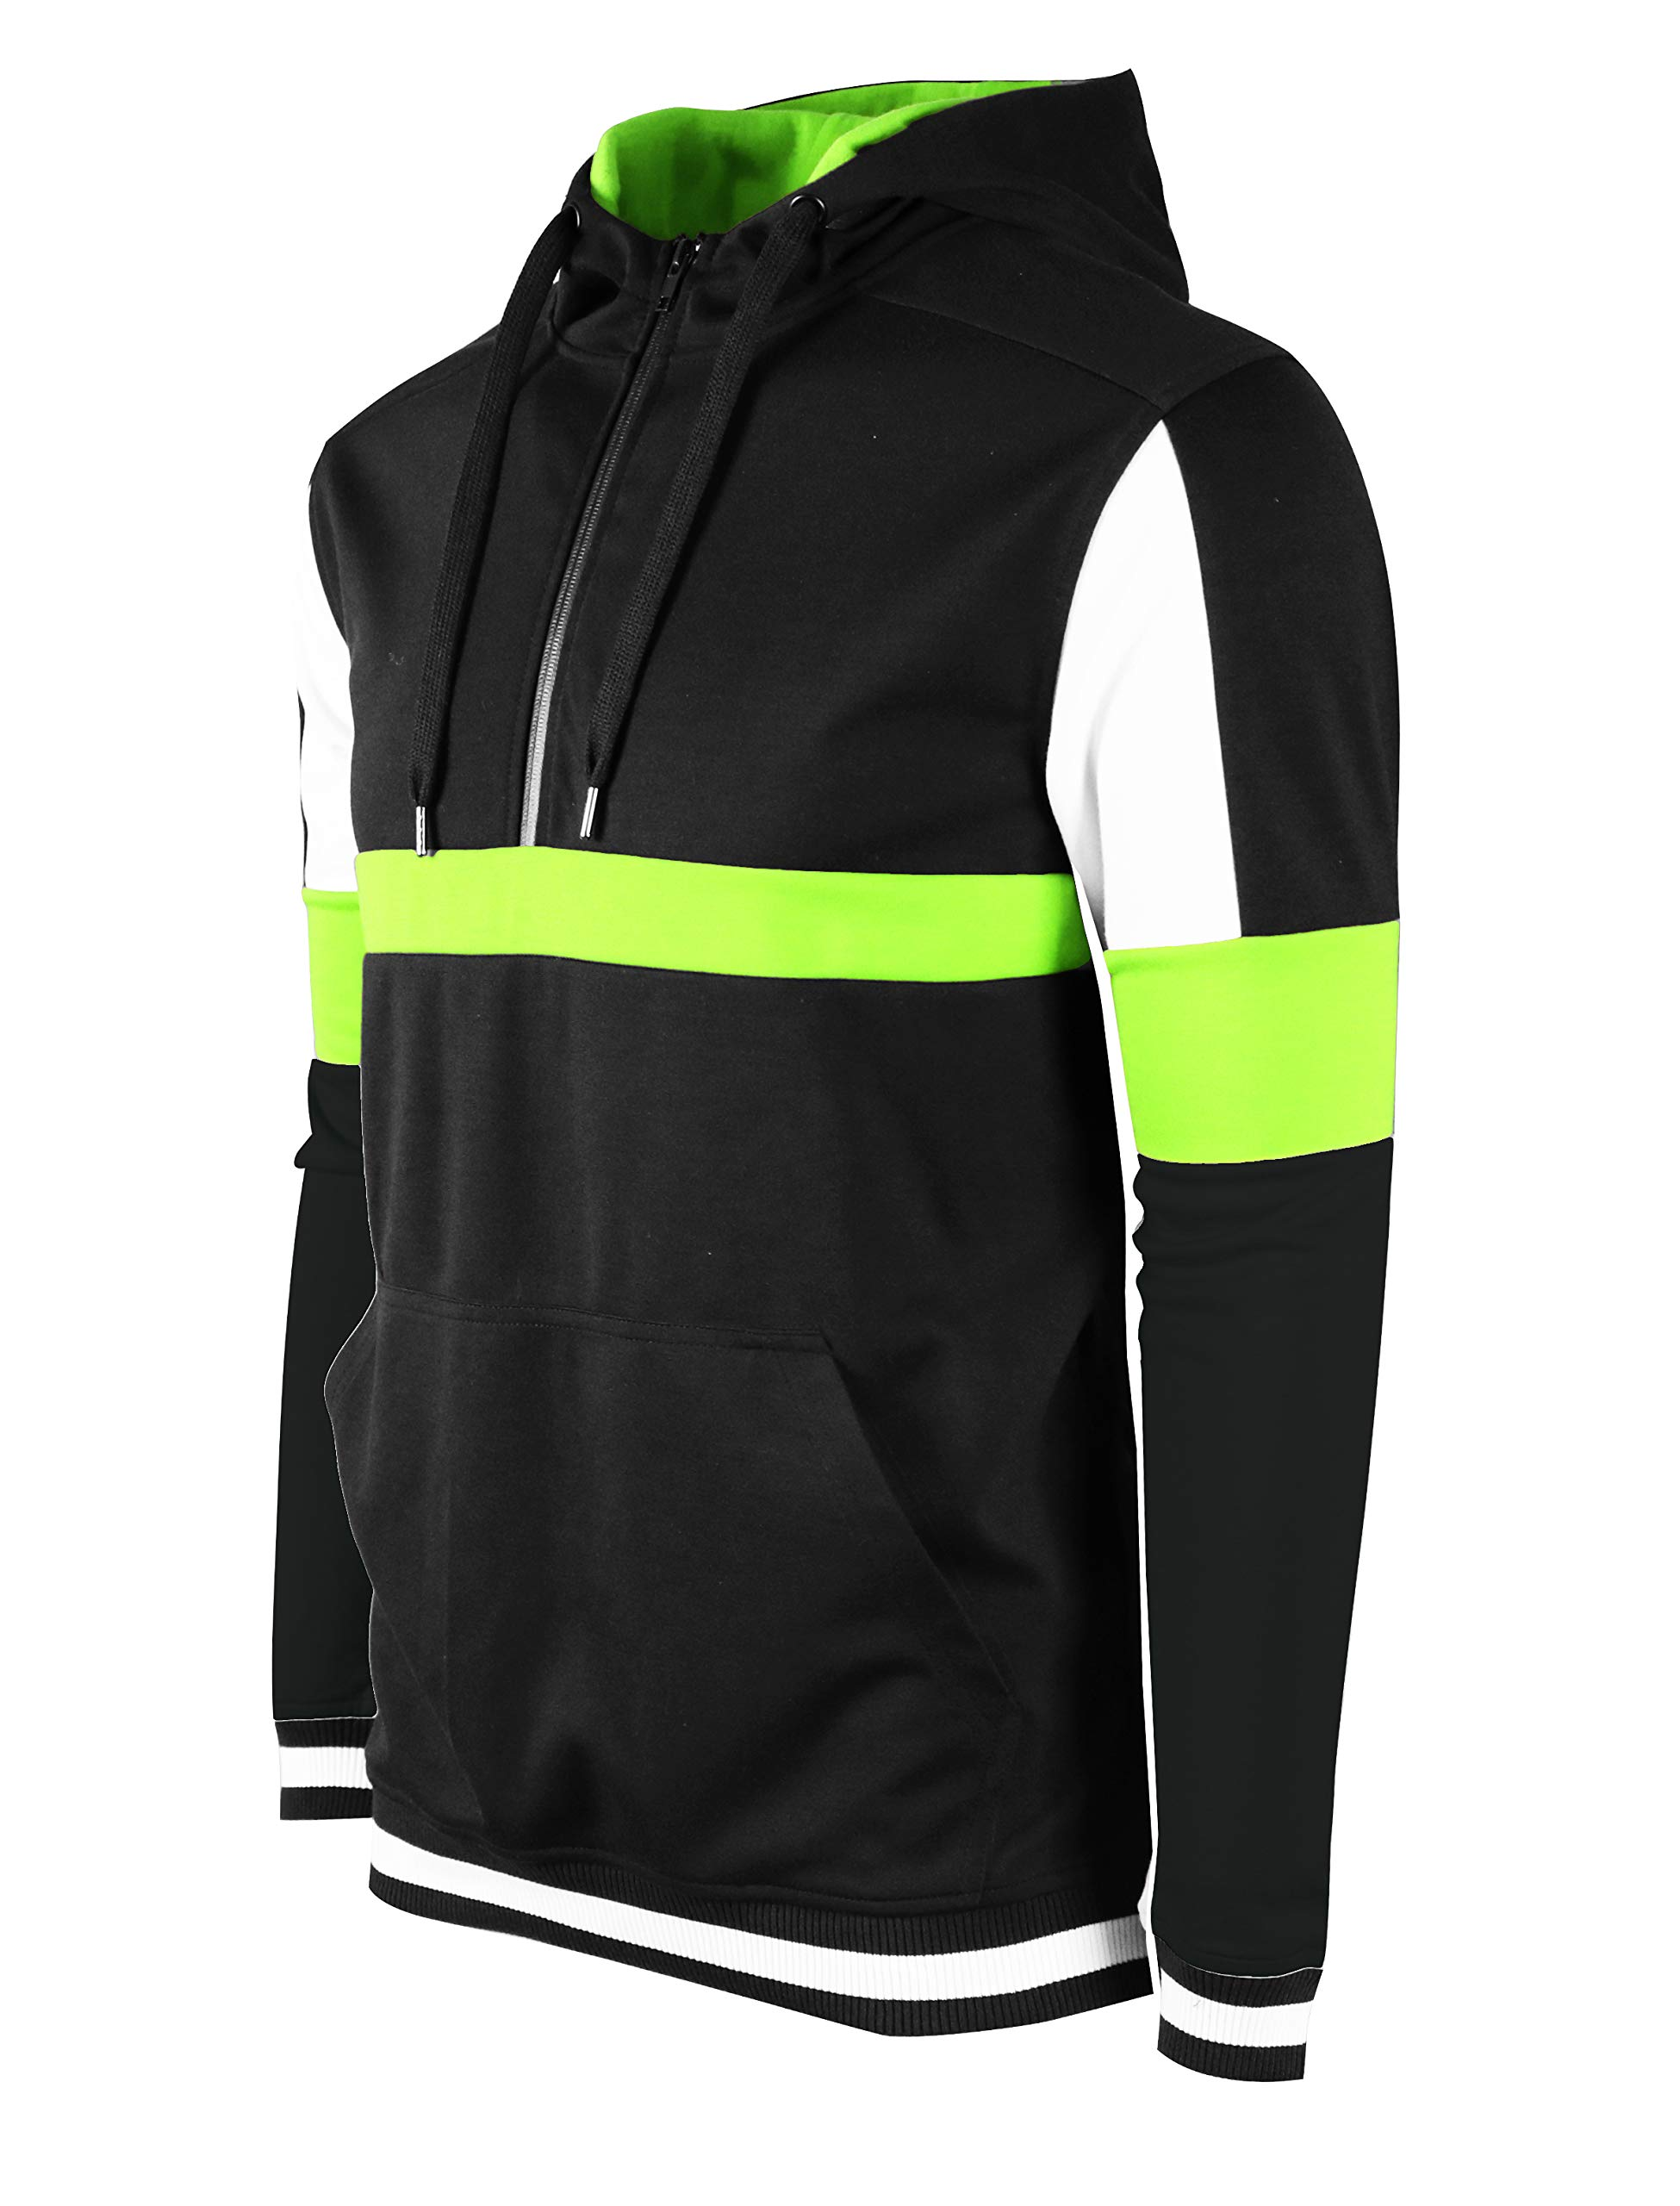 SCREENSHOT SPORTS-F11955 Mens Premium TechFleece Fashion Hoodie - Athletic Jogger Fitness Workout Gym Jacket-BK/NEON-Medium by SCREENSHOT